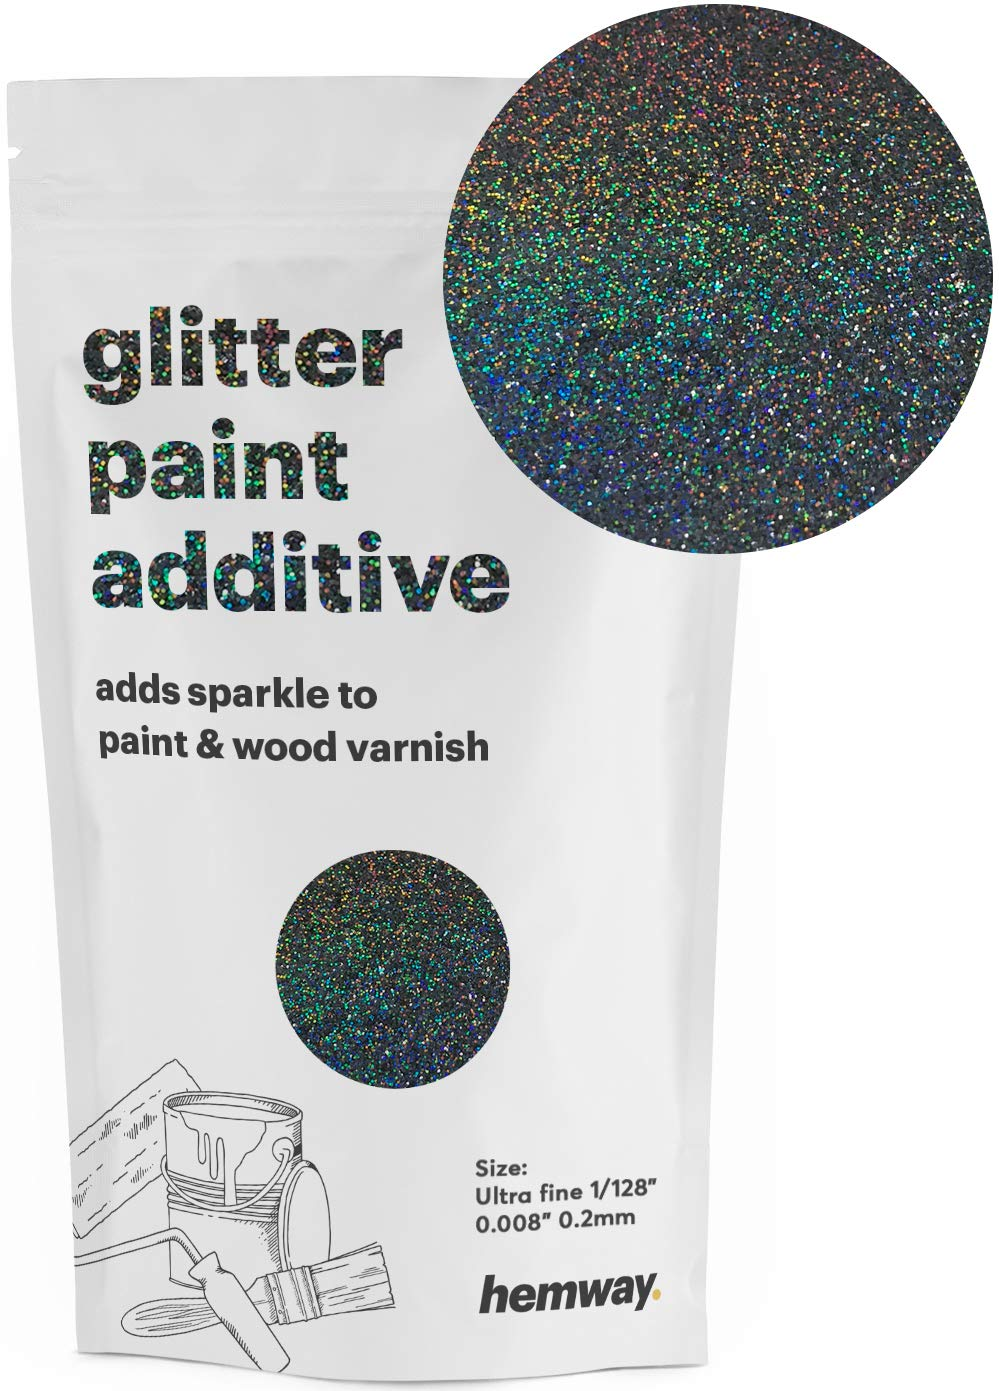 "Hemway Glitter Paint Additive Ultrafine 1/128"" .008"" 0.2MM Emulsion Water Based Paints Wall Ceiling 100g / 3.5oz (Black Holographic)"